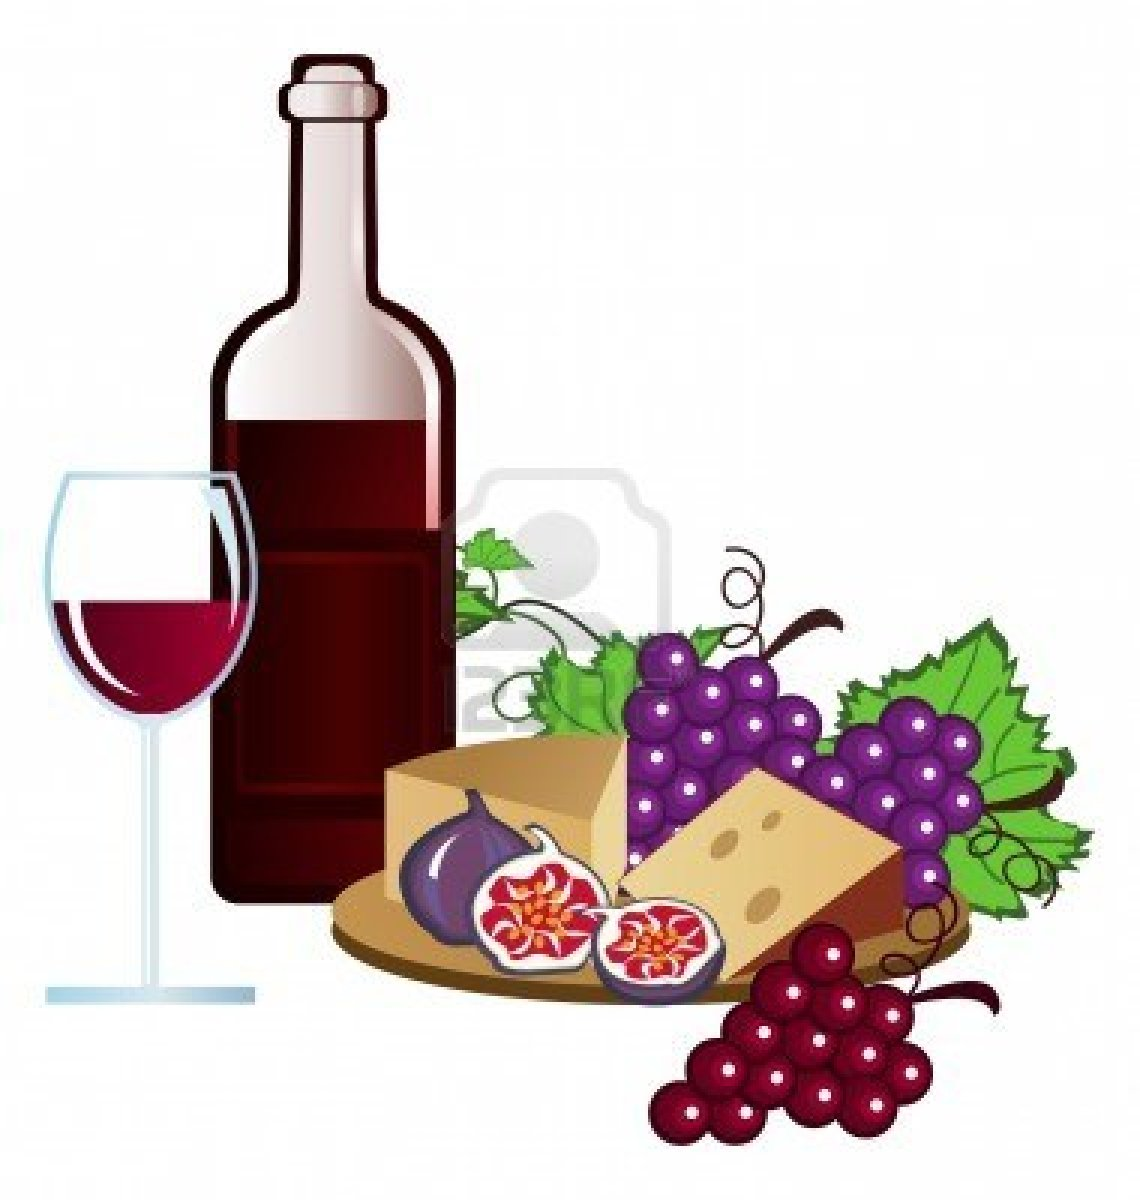 1140x1200 Wine Cheese And Grapes Clipart Amp Wine Cheese And Grapes Clip Art